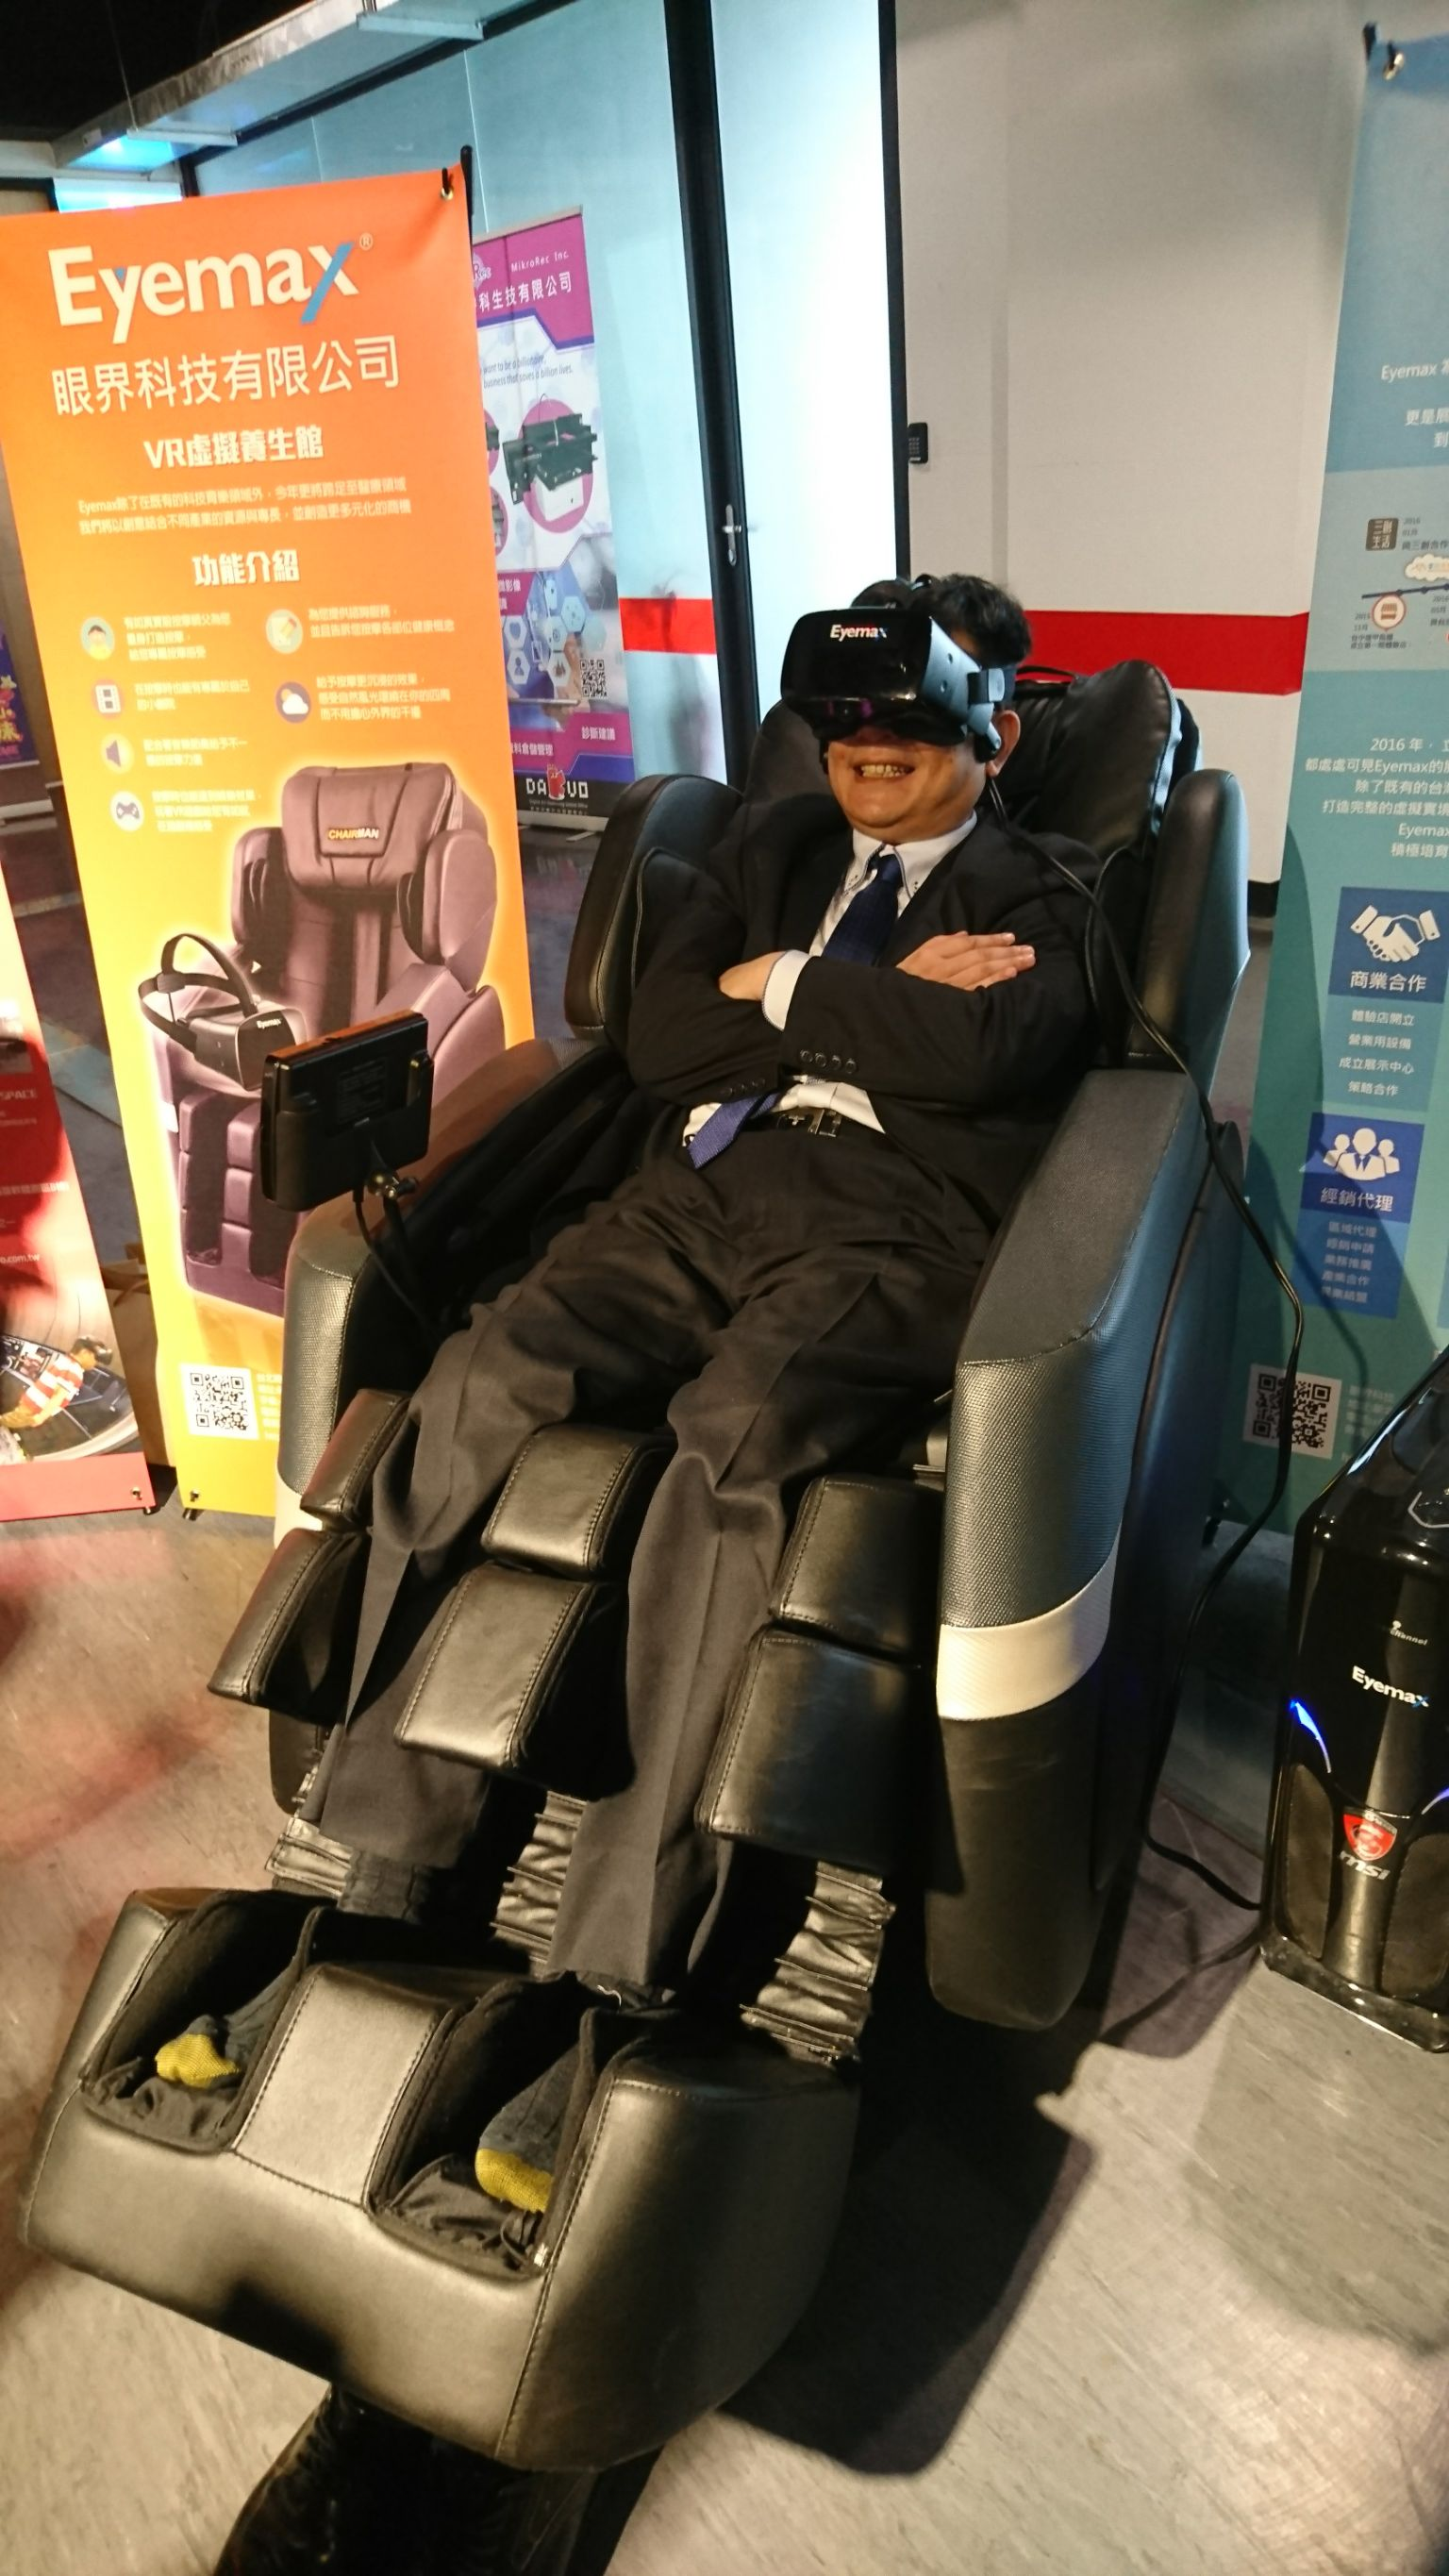 Massage Chair News A Review The Best Portable Massage Chairs